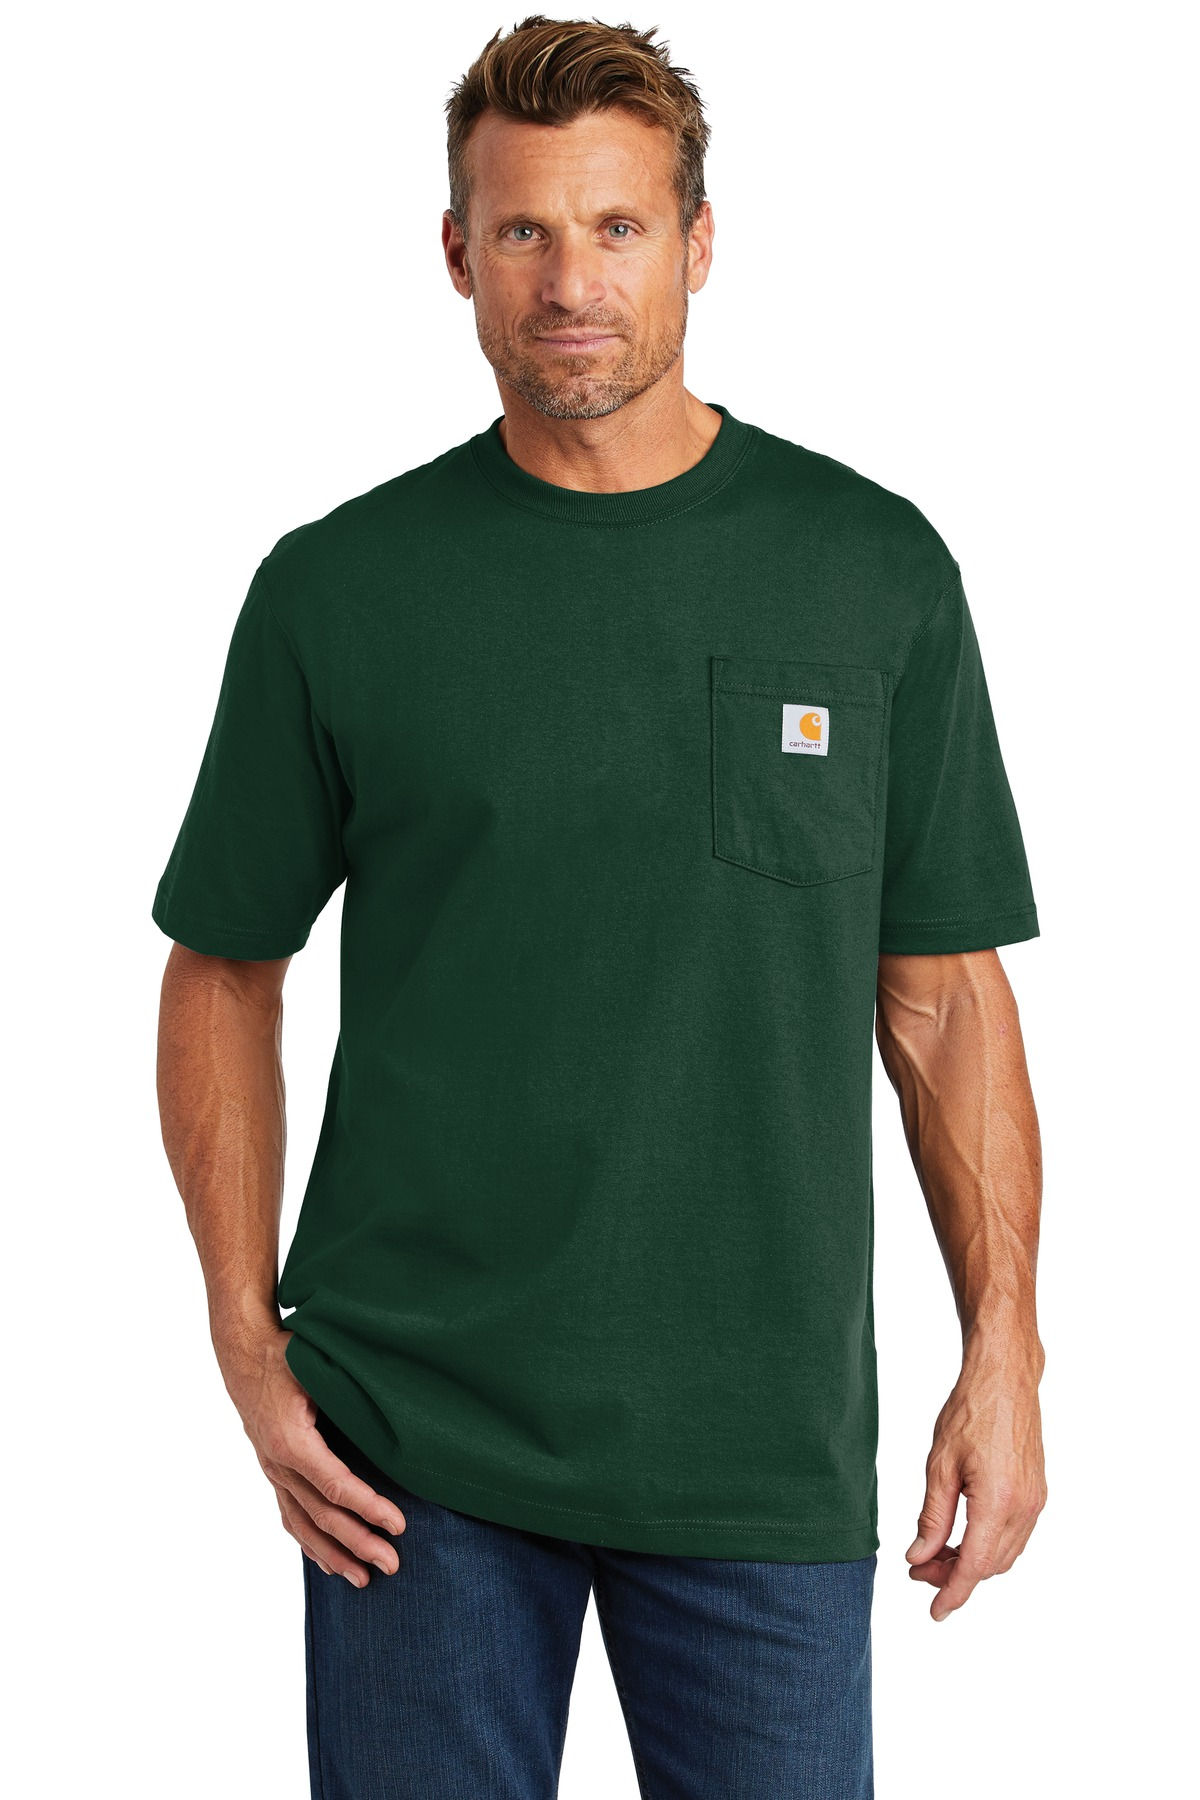 Carhartt  ®  Workwear Pocket Short Sleeve T-Shirt. CTK87 - Hunter Green